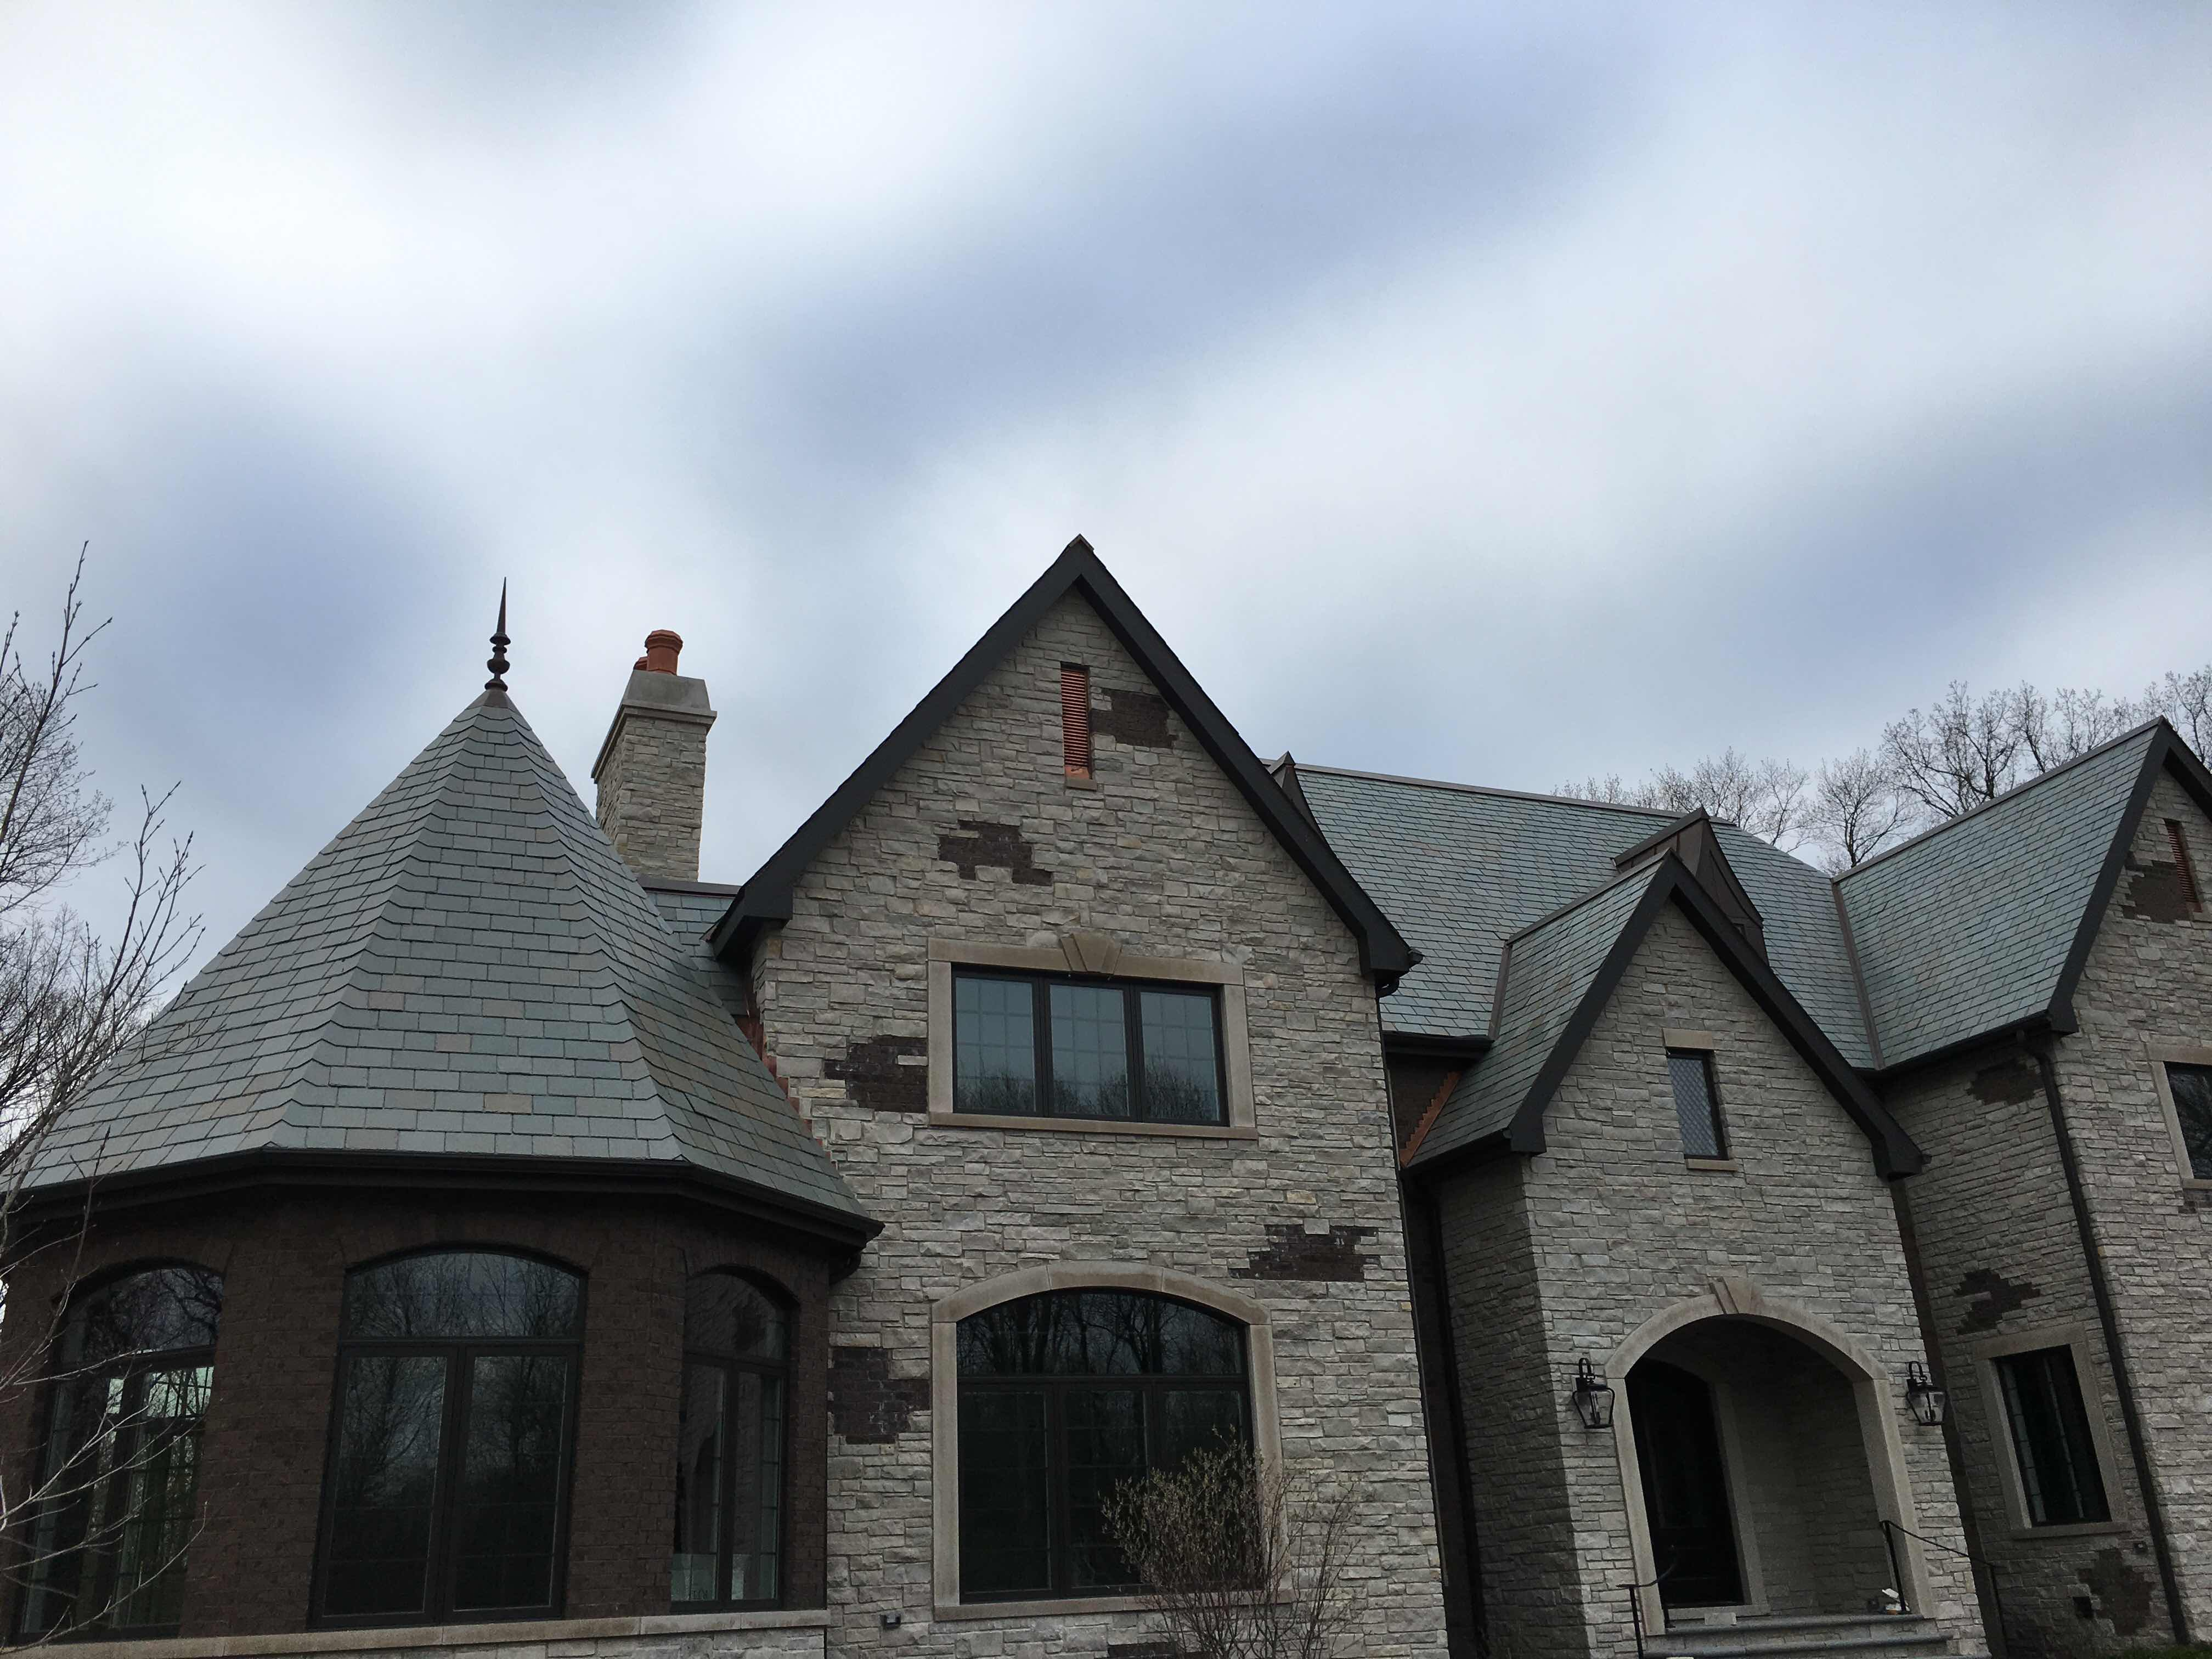 Slate Roof, Crown Point Indiana